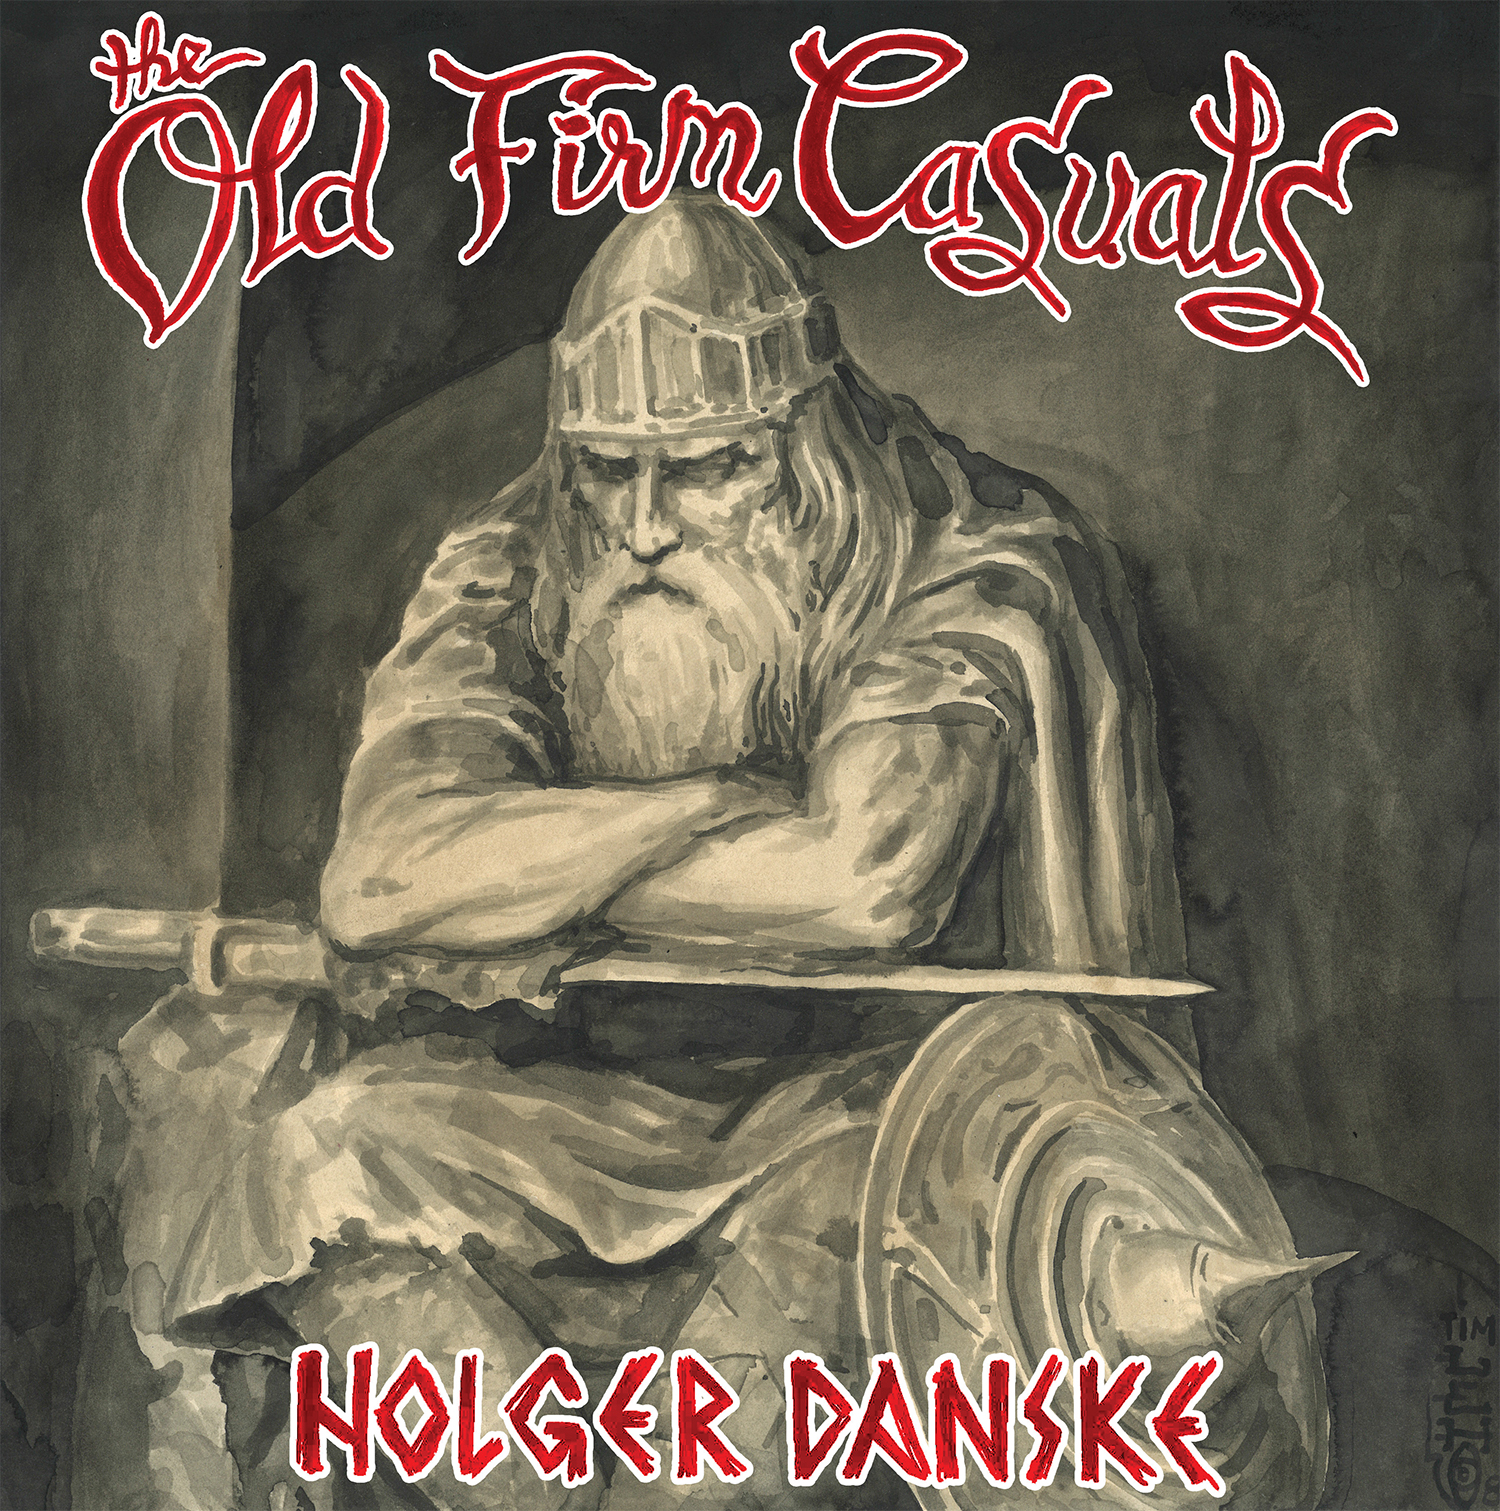 the-old-firm-casuals-holger-danske-ein-album-review